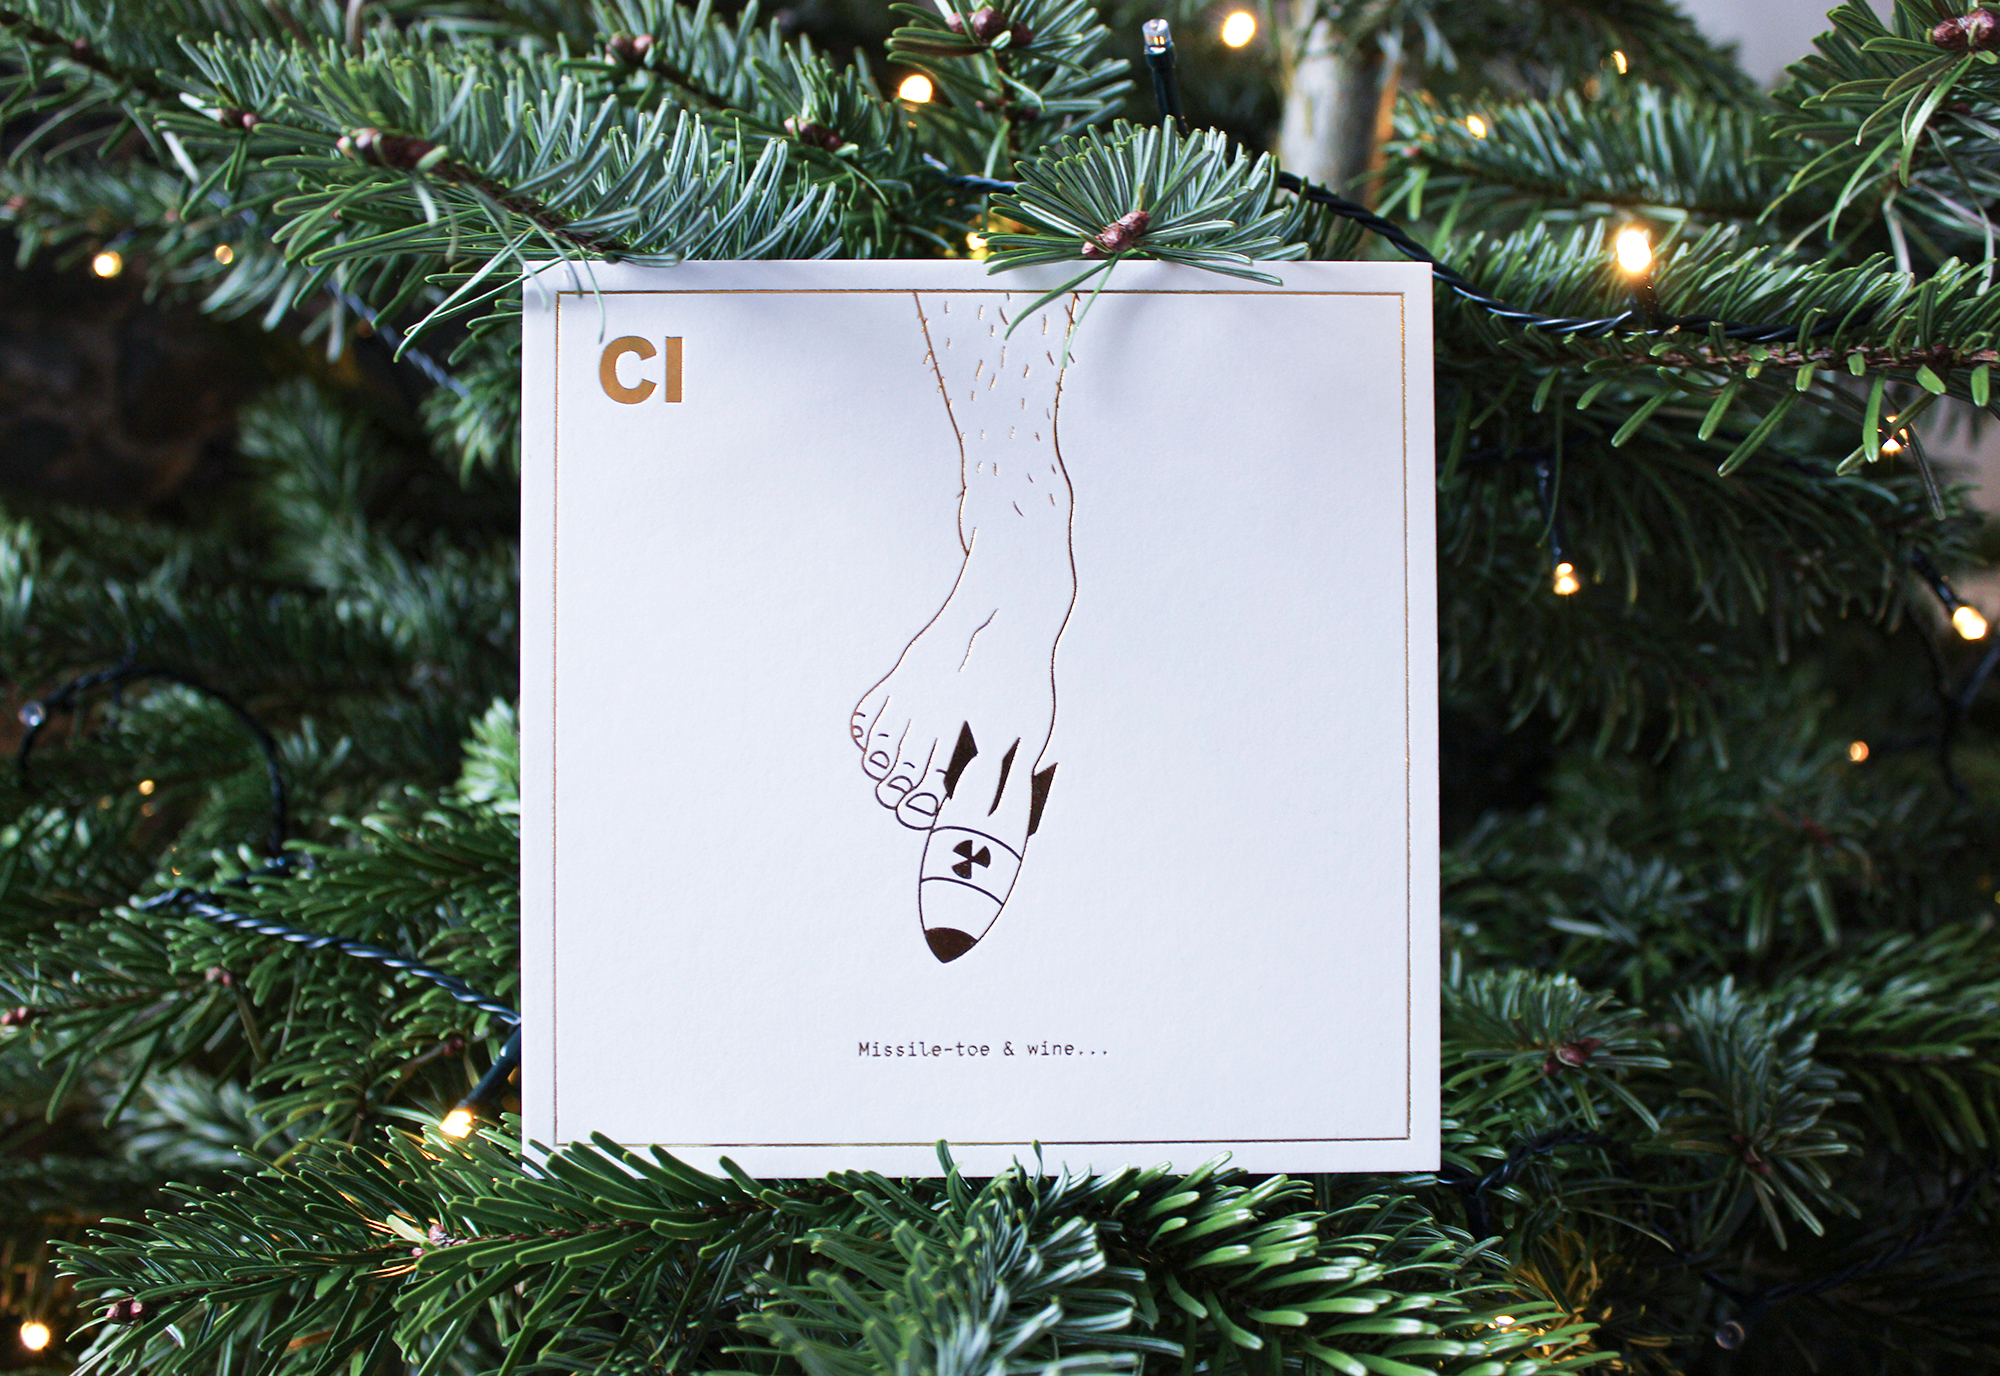 Cover image: CI Christmas Card